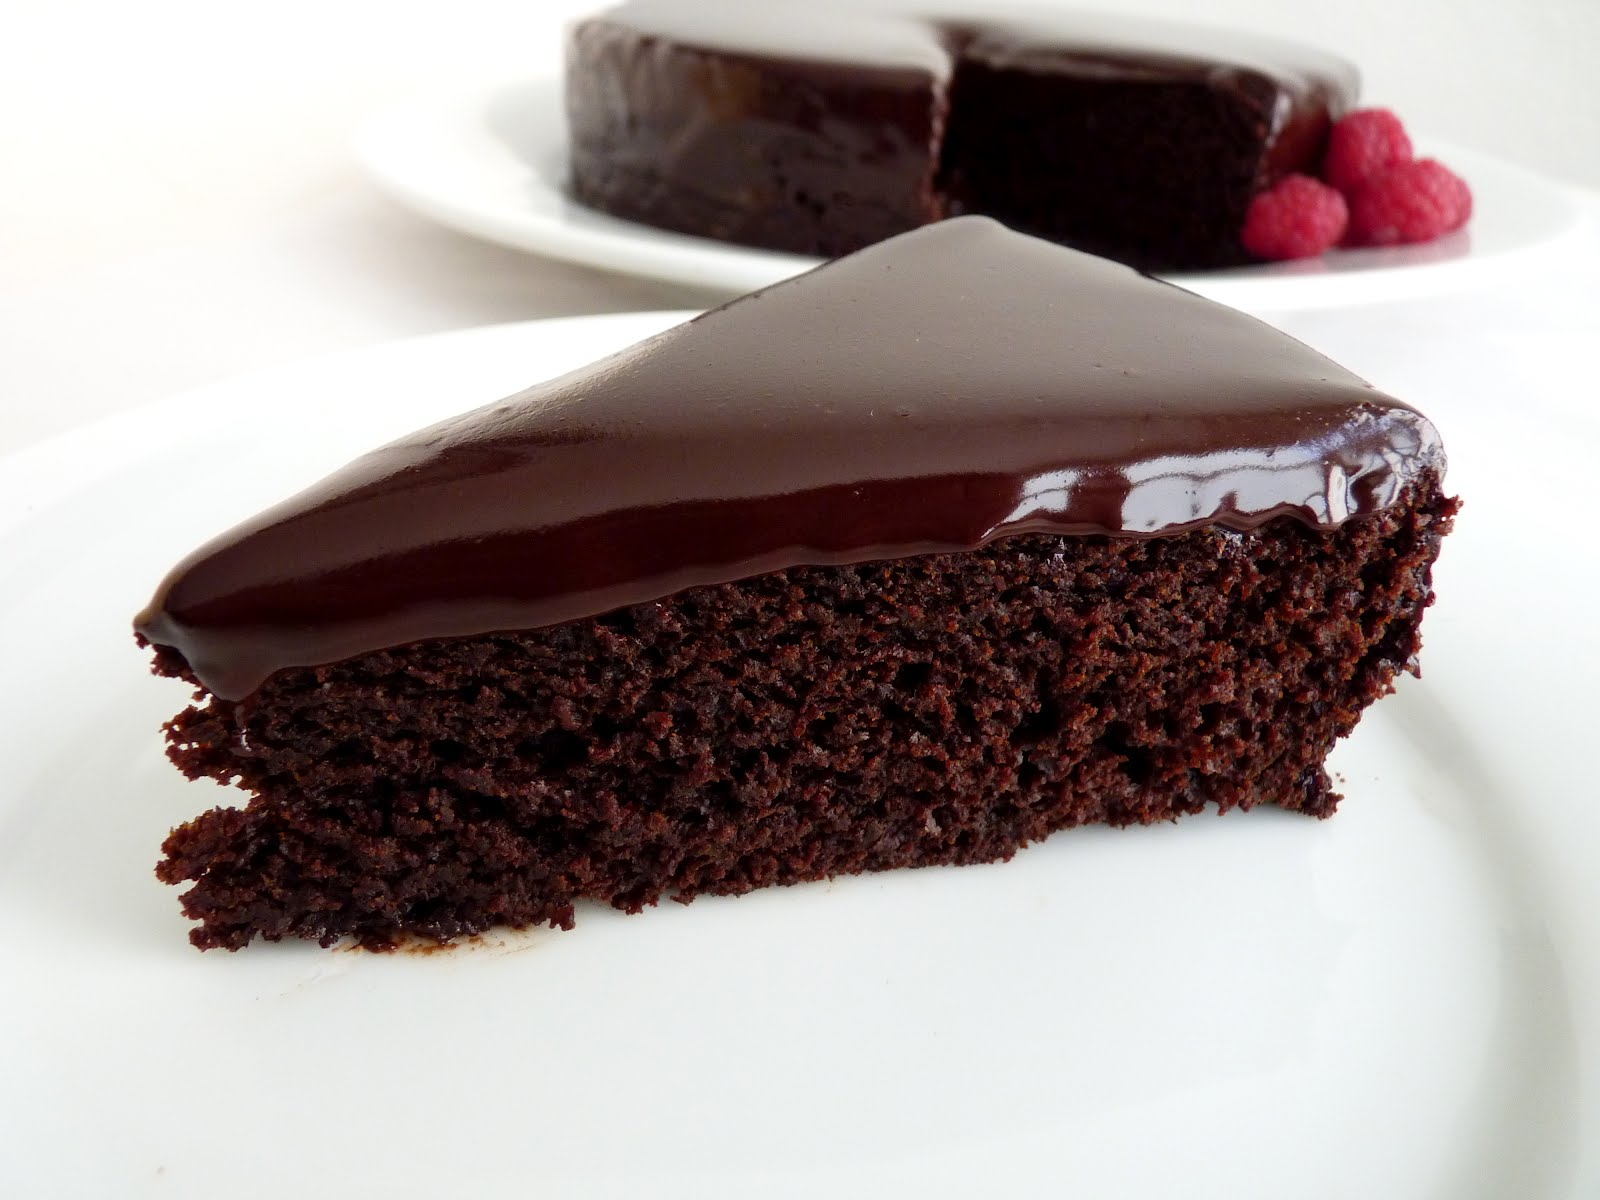 Images Of Chocolate Cake : :pastry studio: Double Chocolate Cake